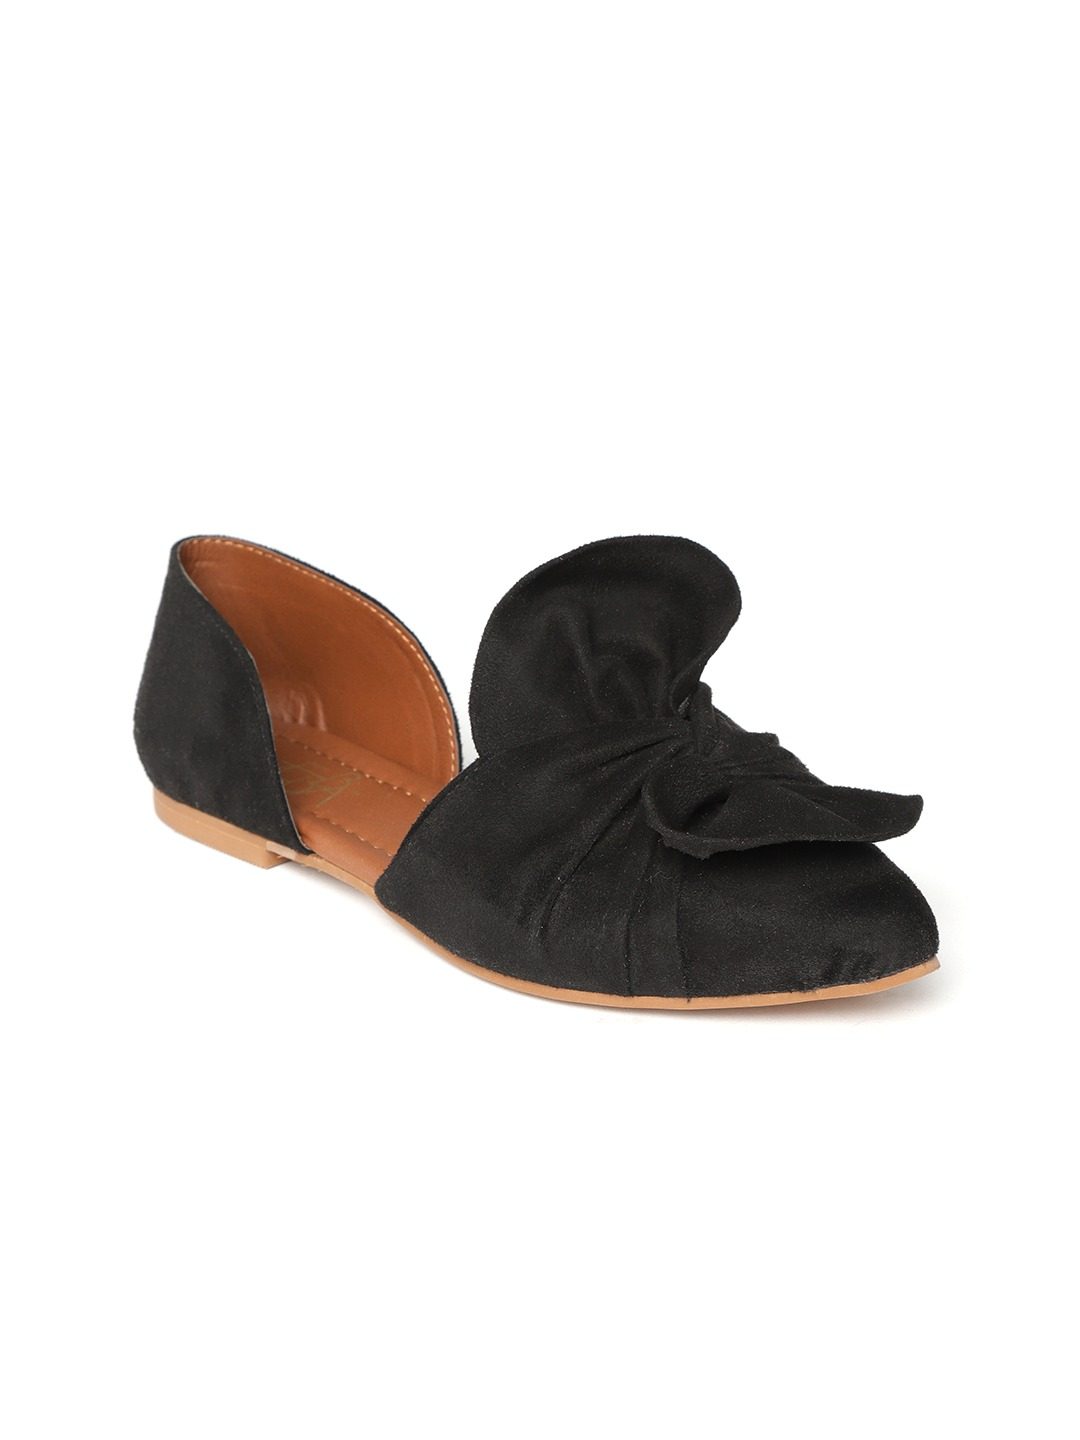 Black Solid Leather Ballerinas